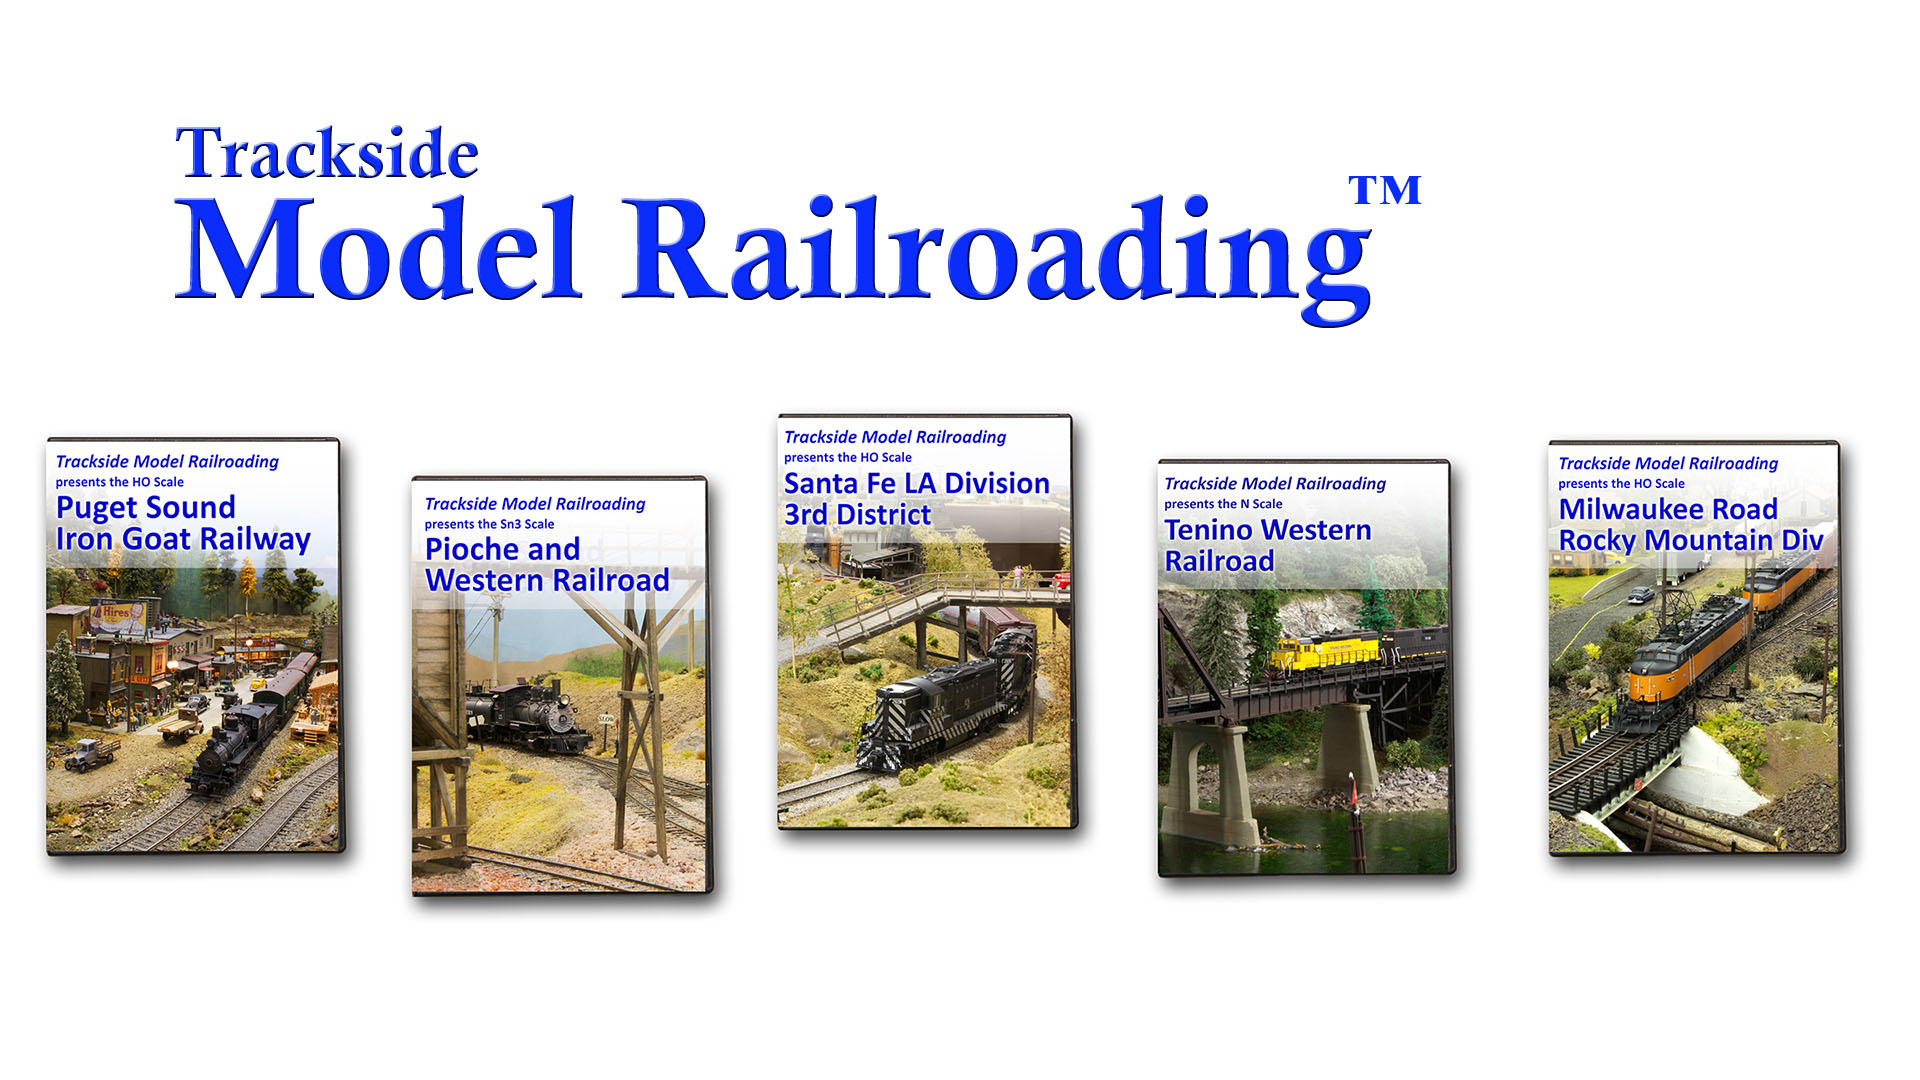 Trackside Model Railroading DVD and Blu-rays